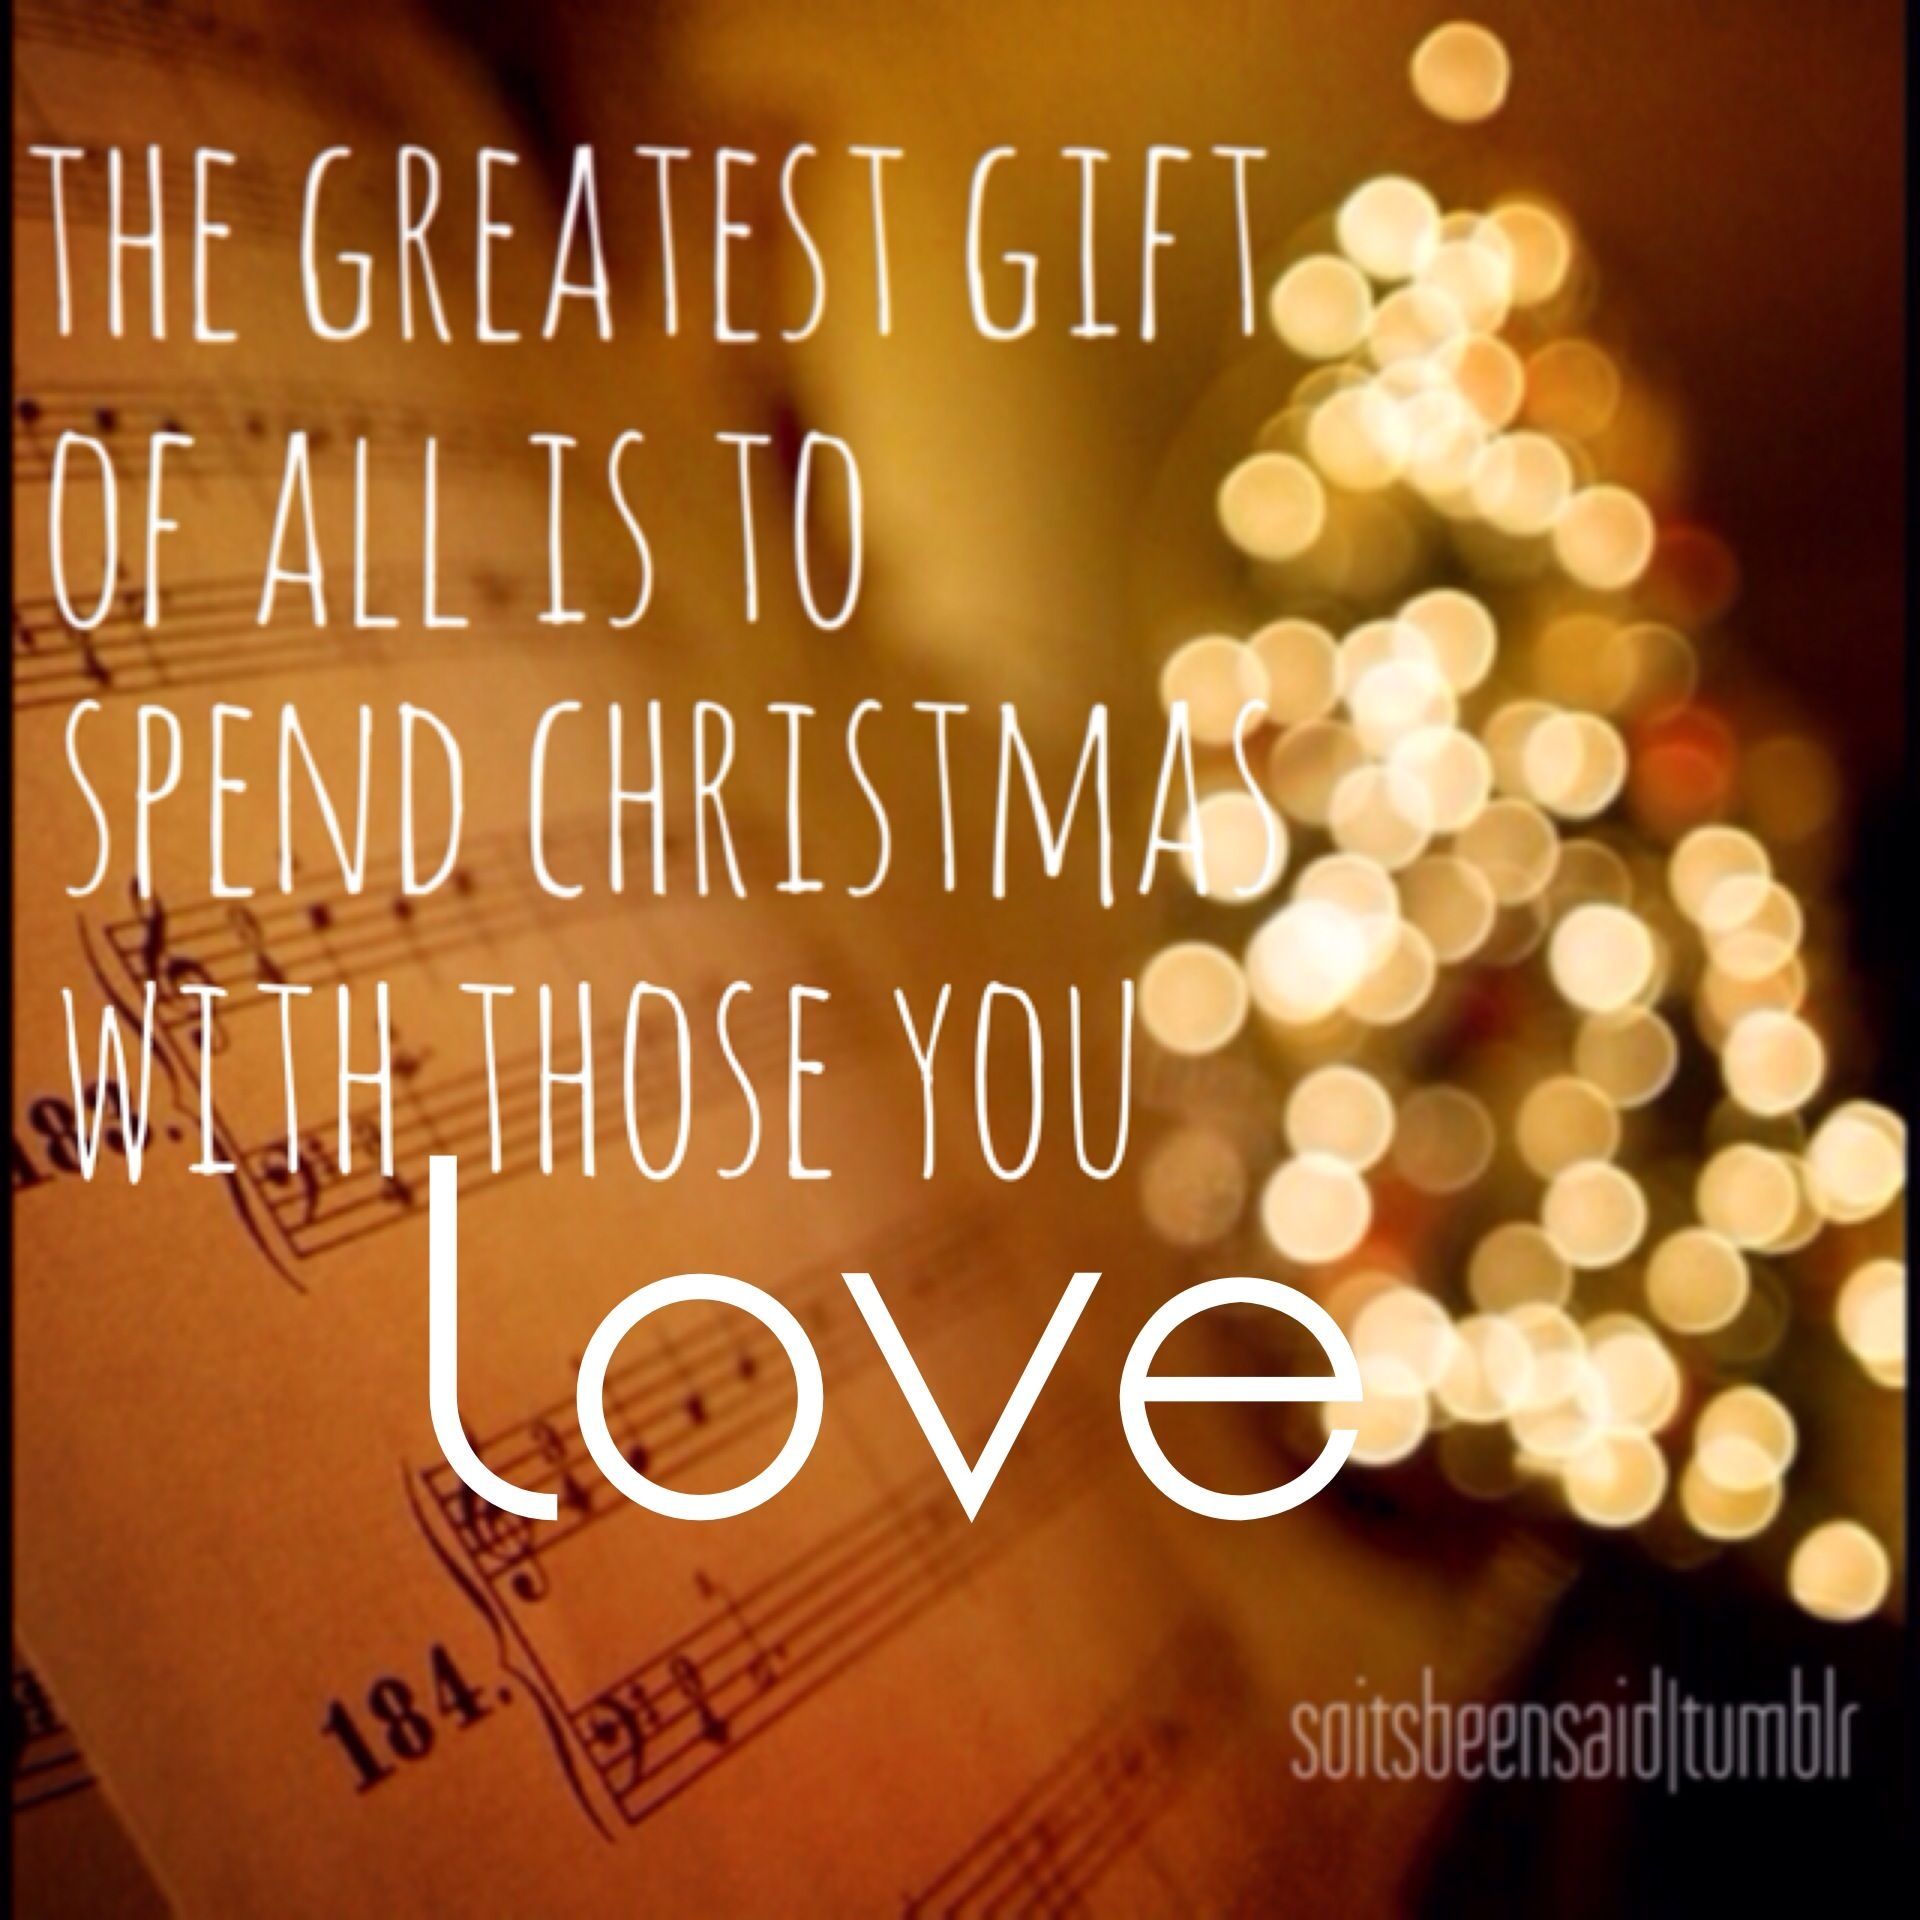 quote quotes quoted quotation quotations the greatest gift